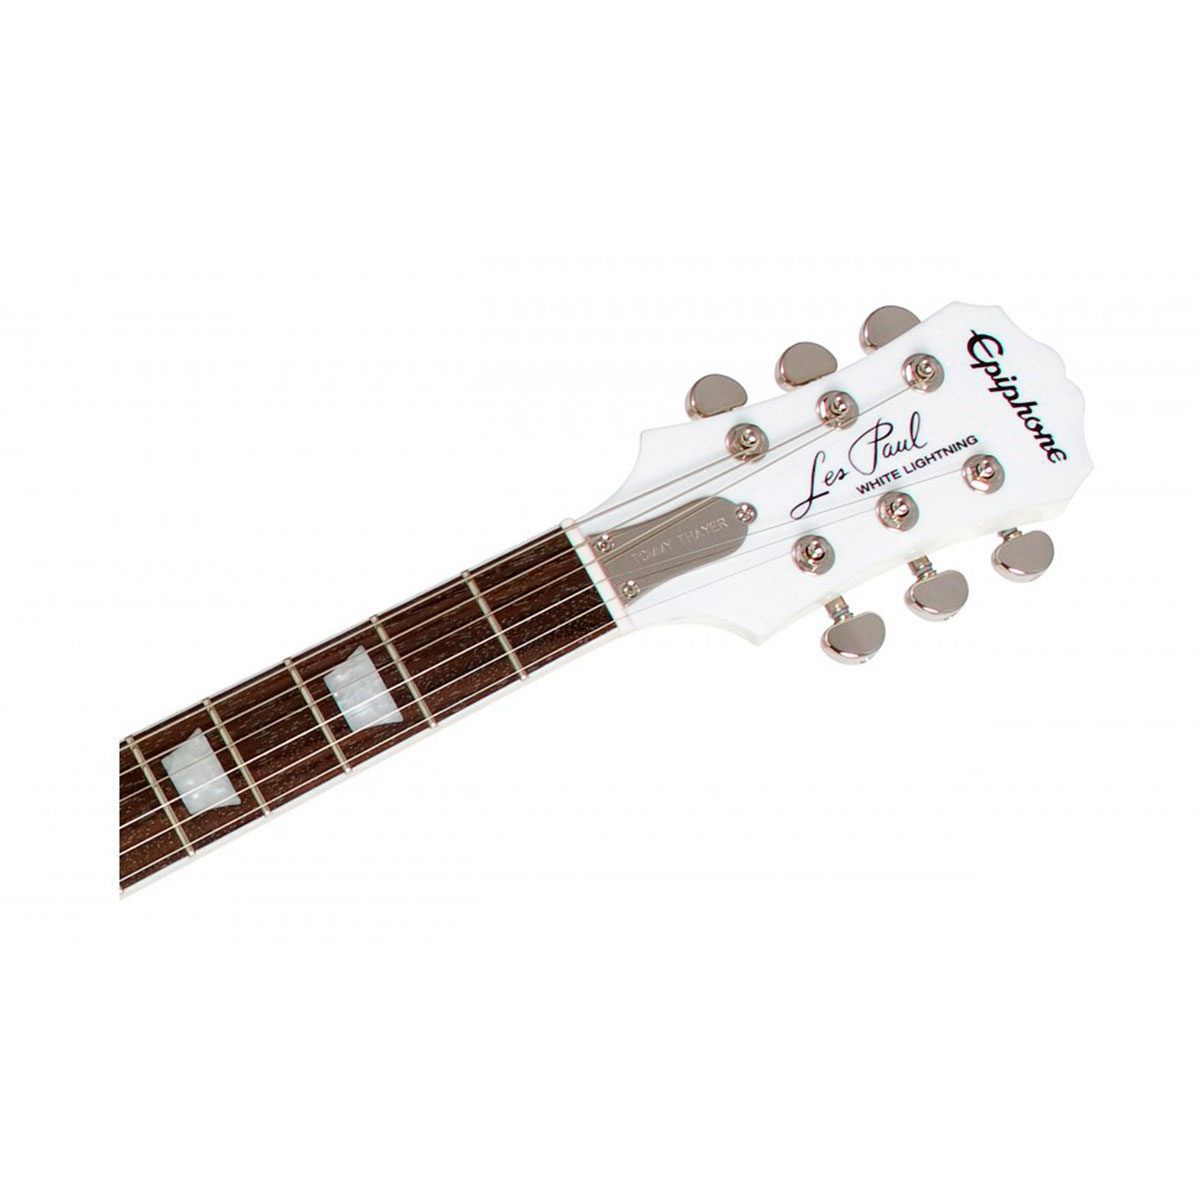 Guitarra Les Paul Standard Tommy Thayer White Lightning Limited Edition - Epiphone